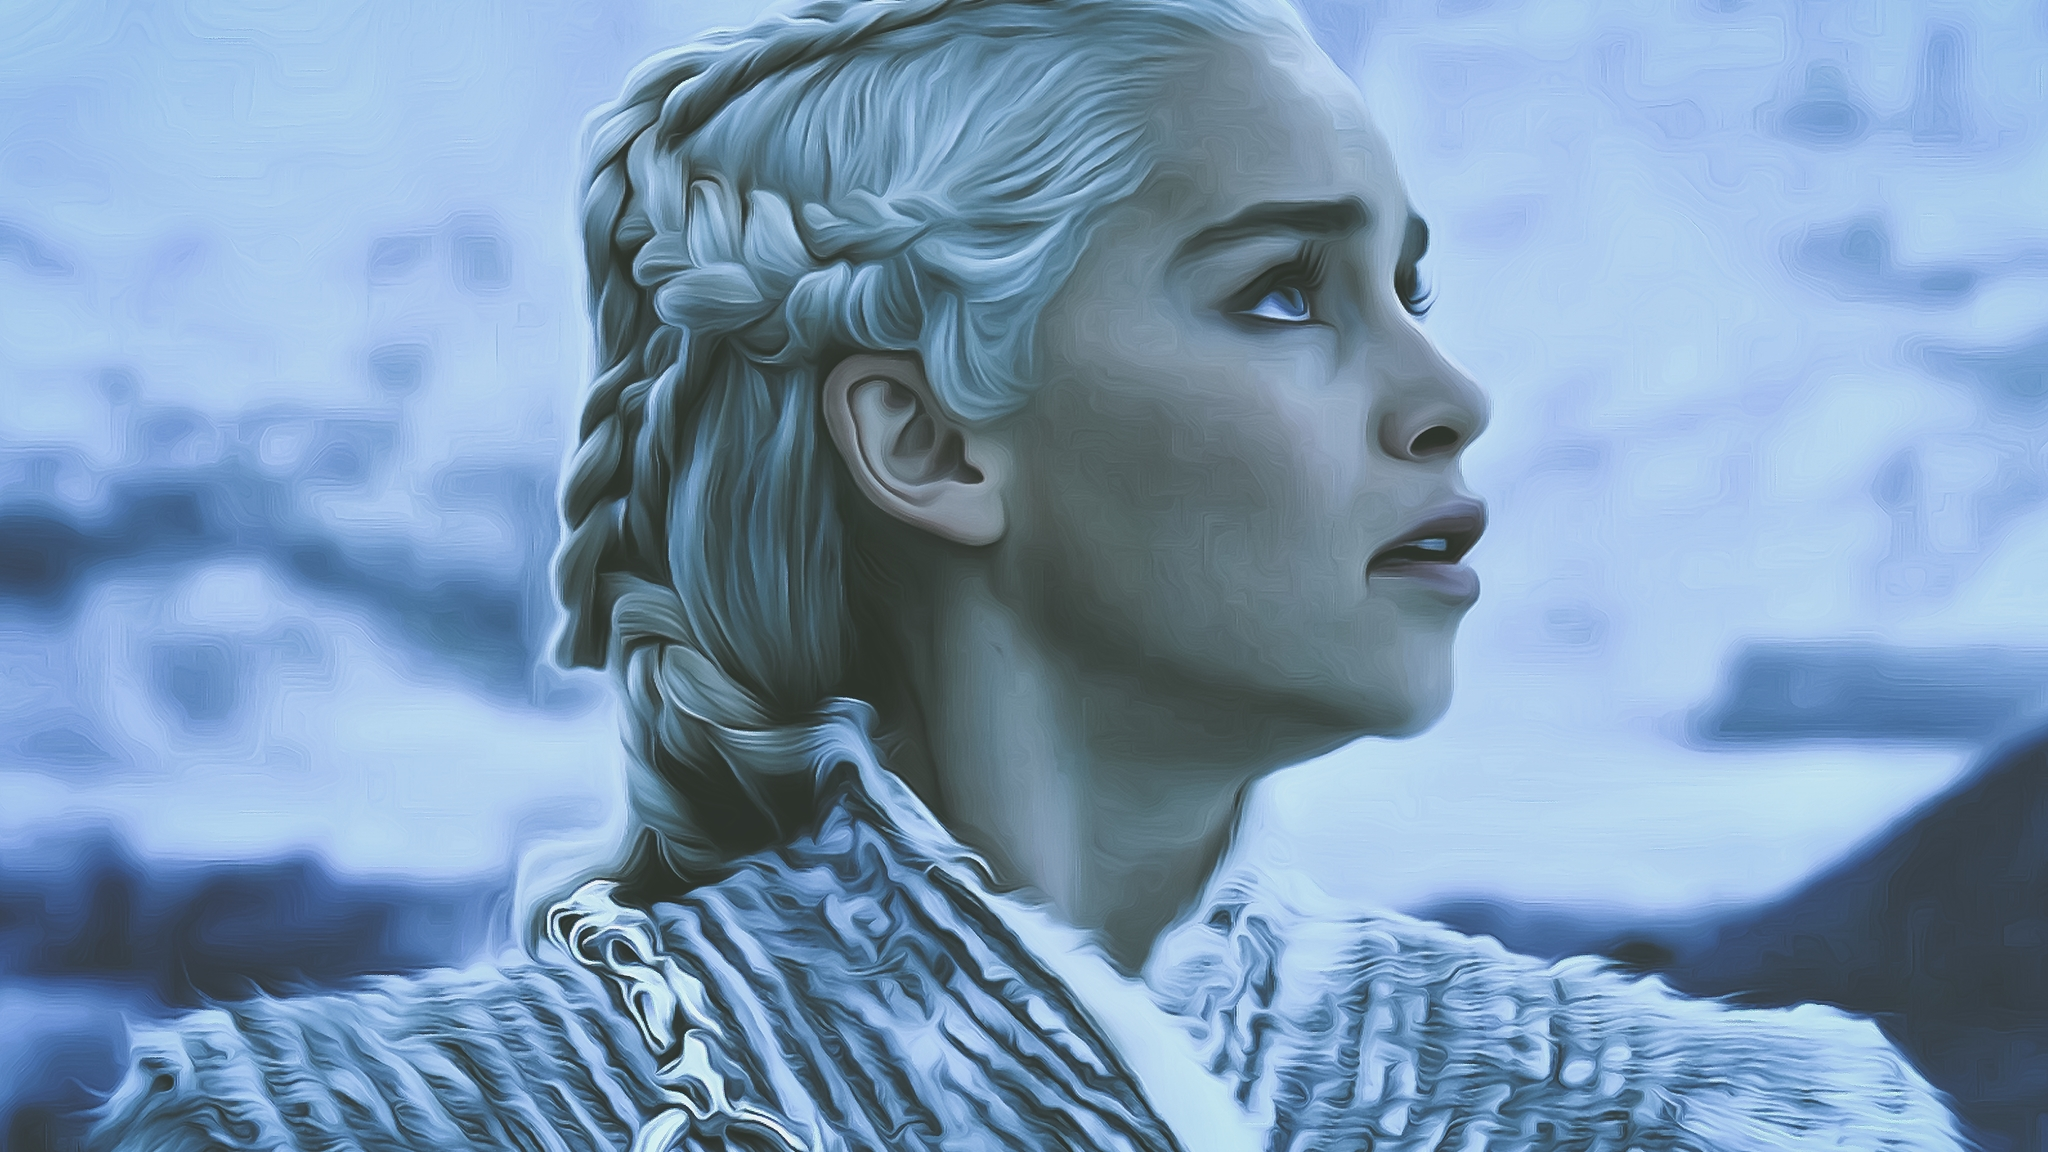 Game Of Thrones Season 8 Wallpapers Wallpaper Cave